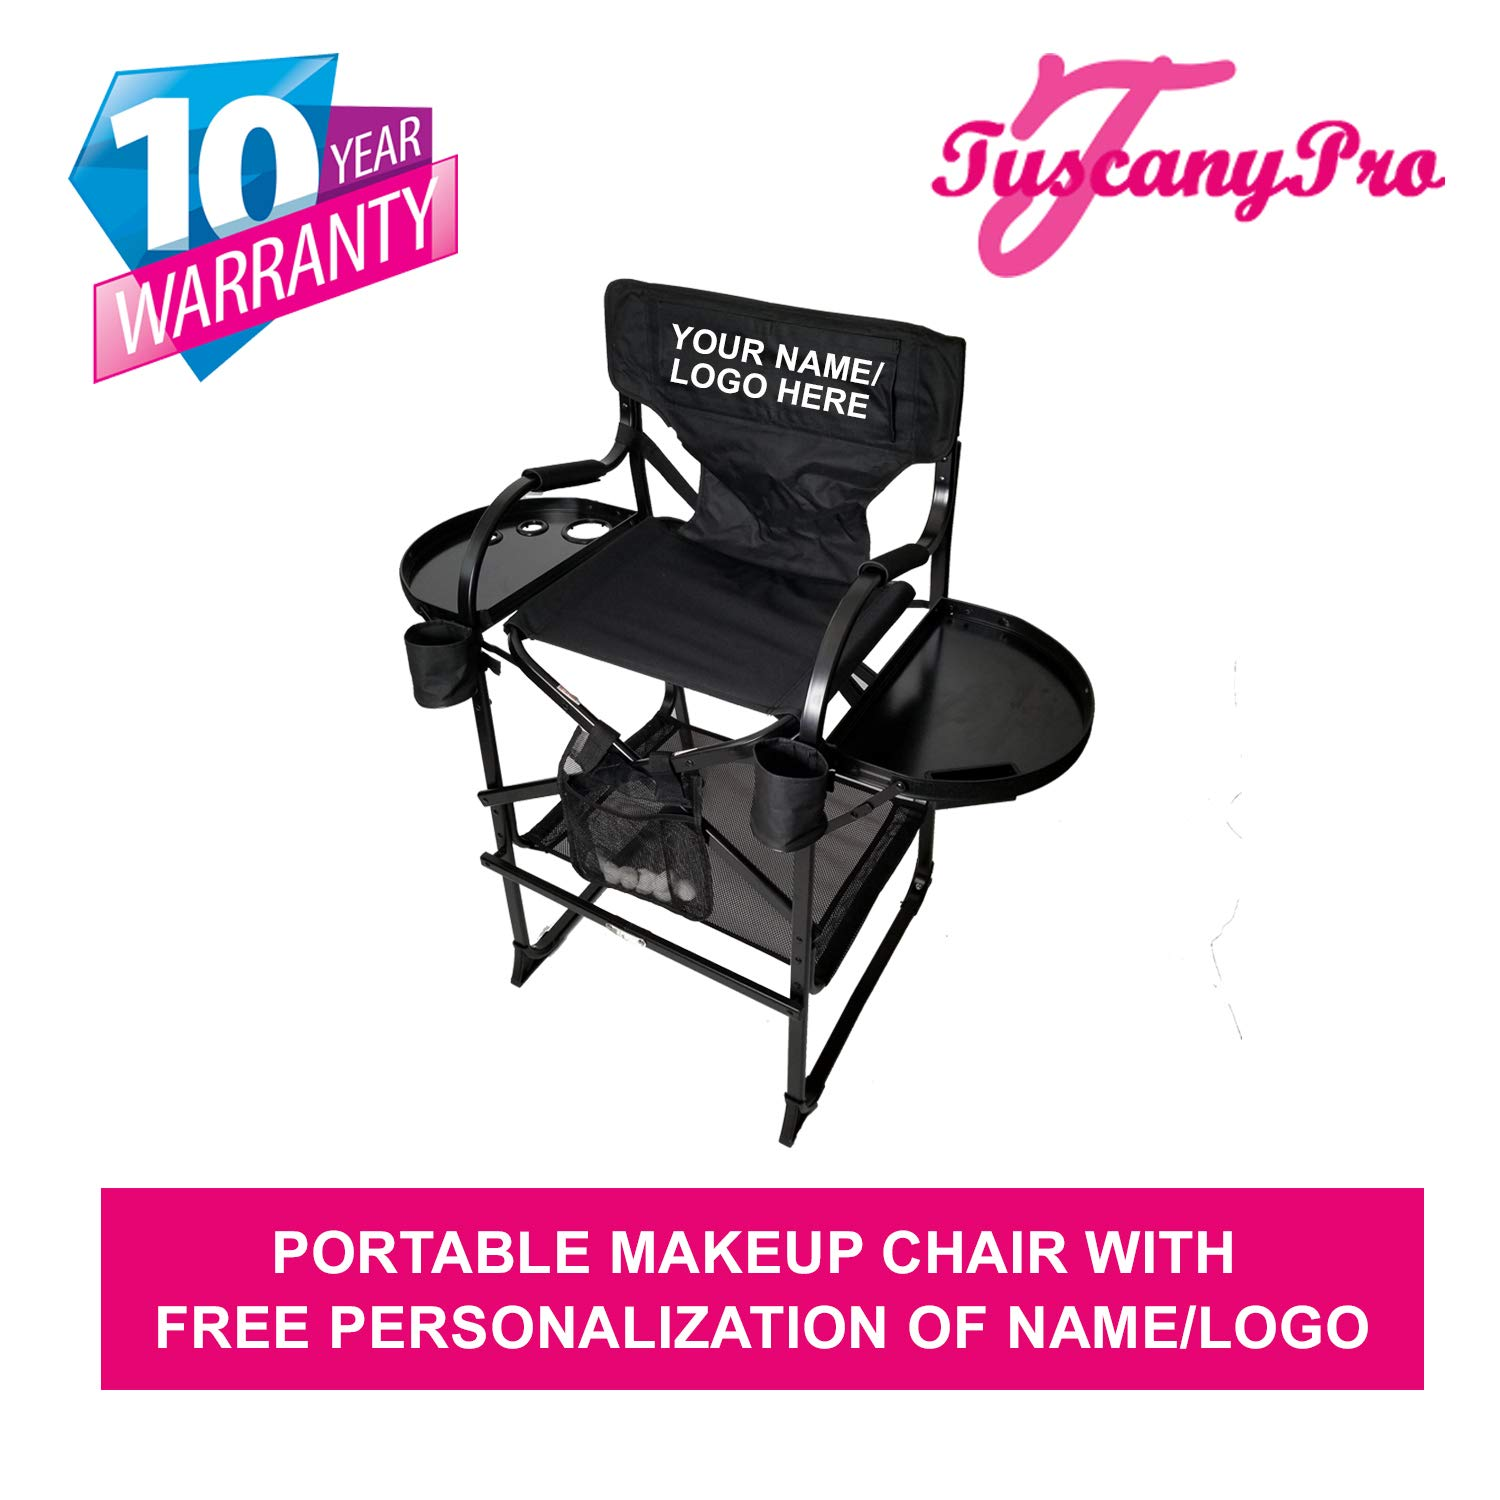 Your Name Logo Included Portable Makeup Chair – Perfect for Makeup, Salon, Events with 29 Inch Seat Height – 10 Years Warranty – US Patented